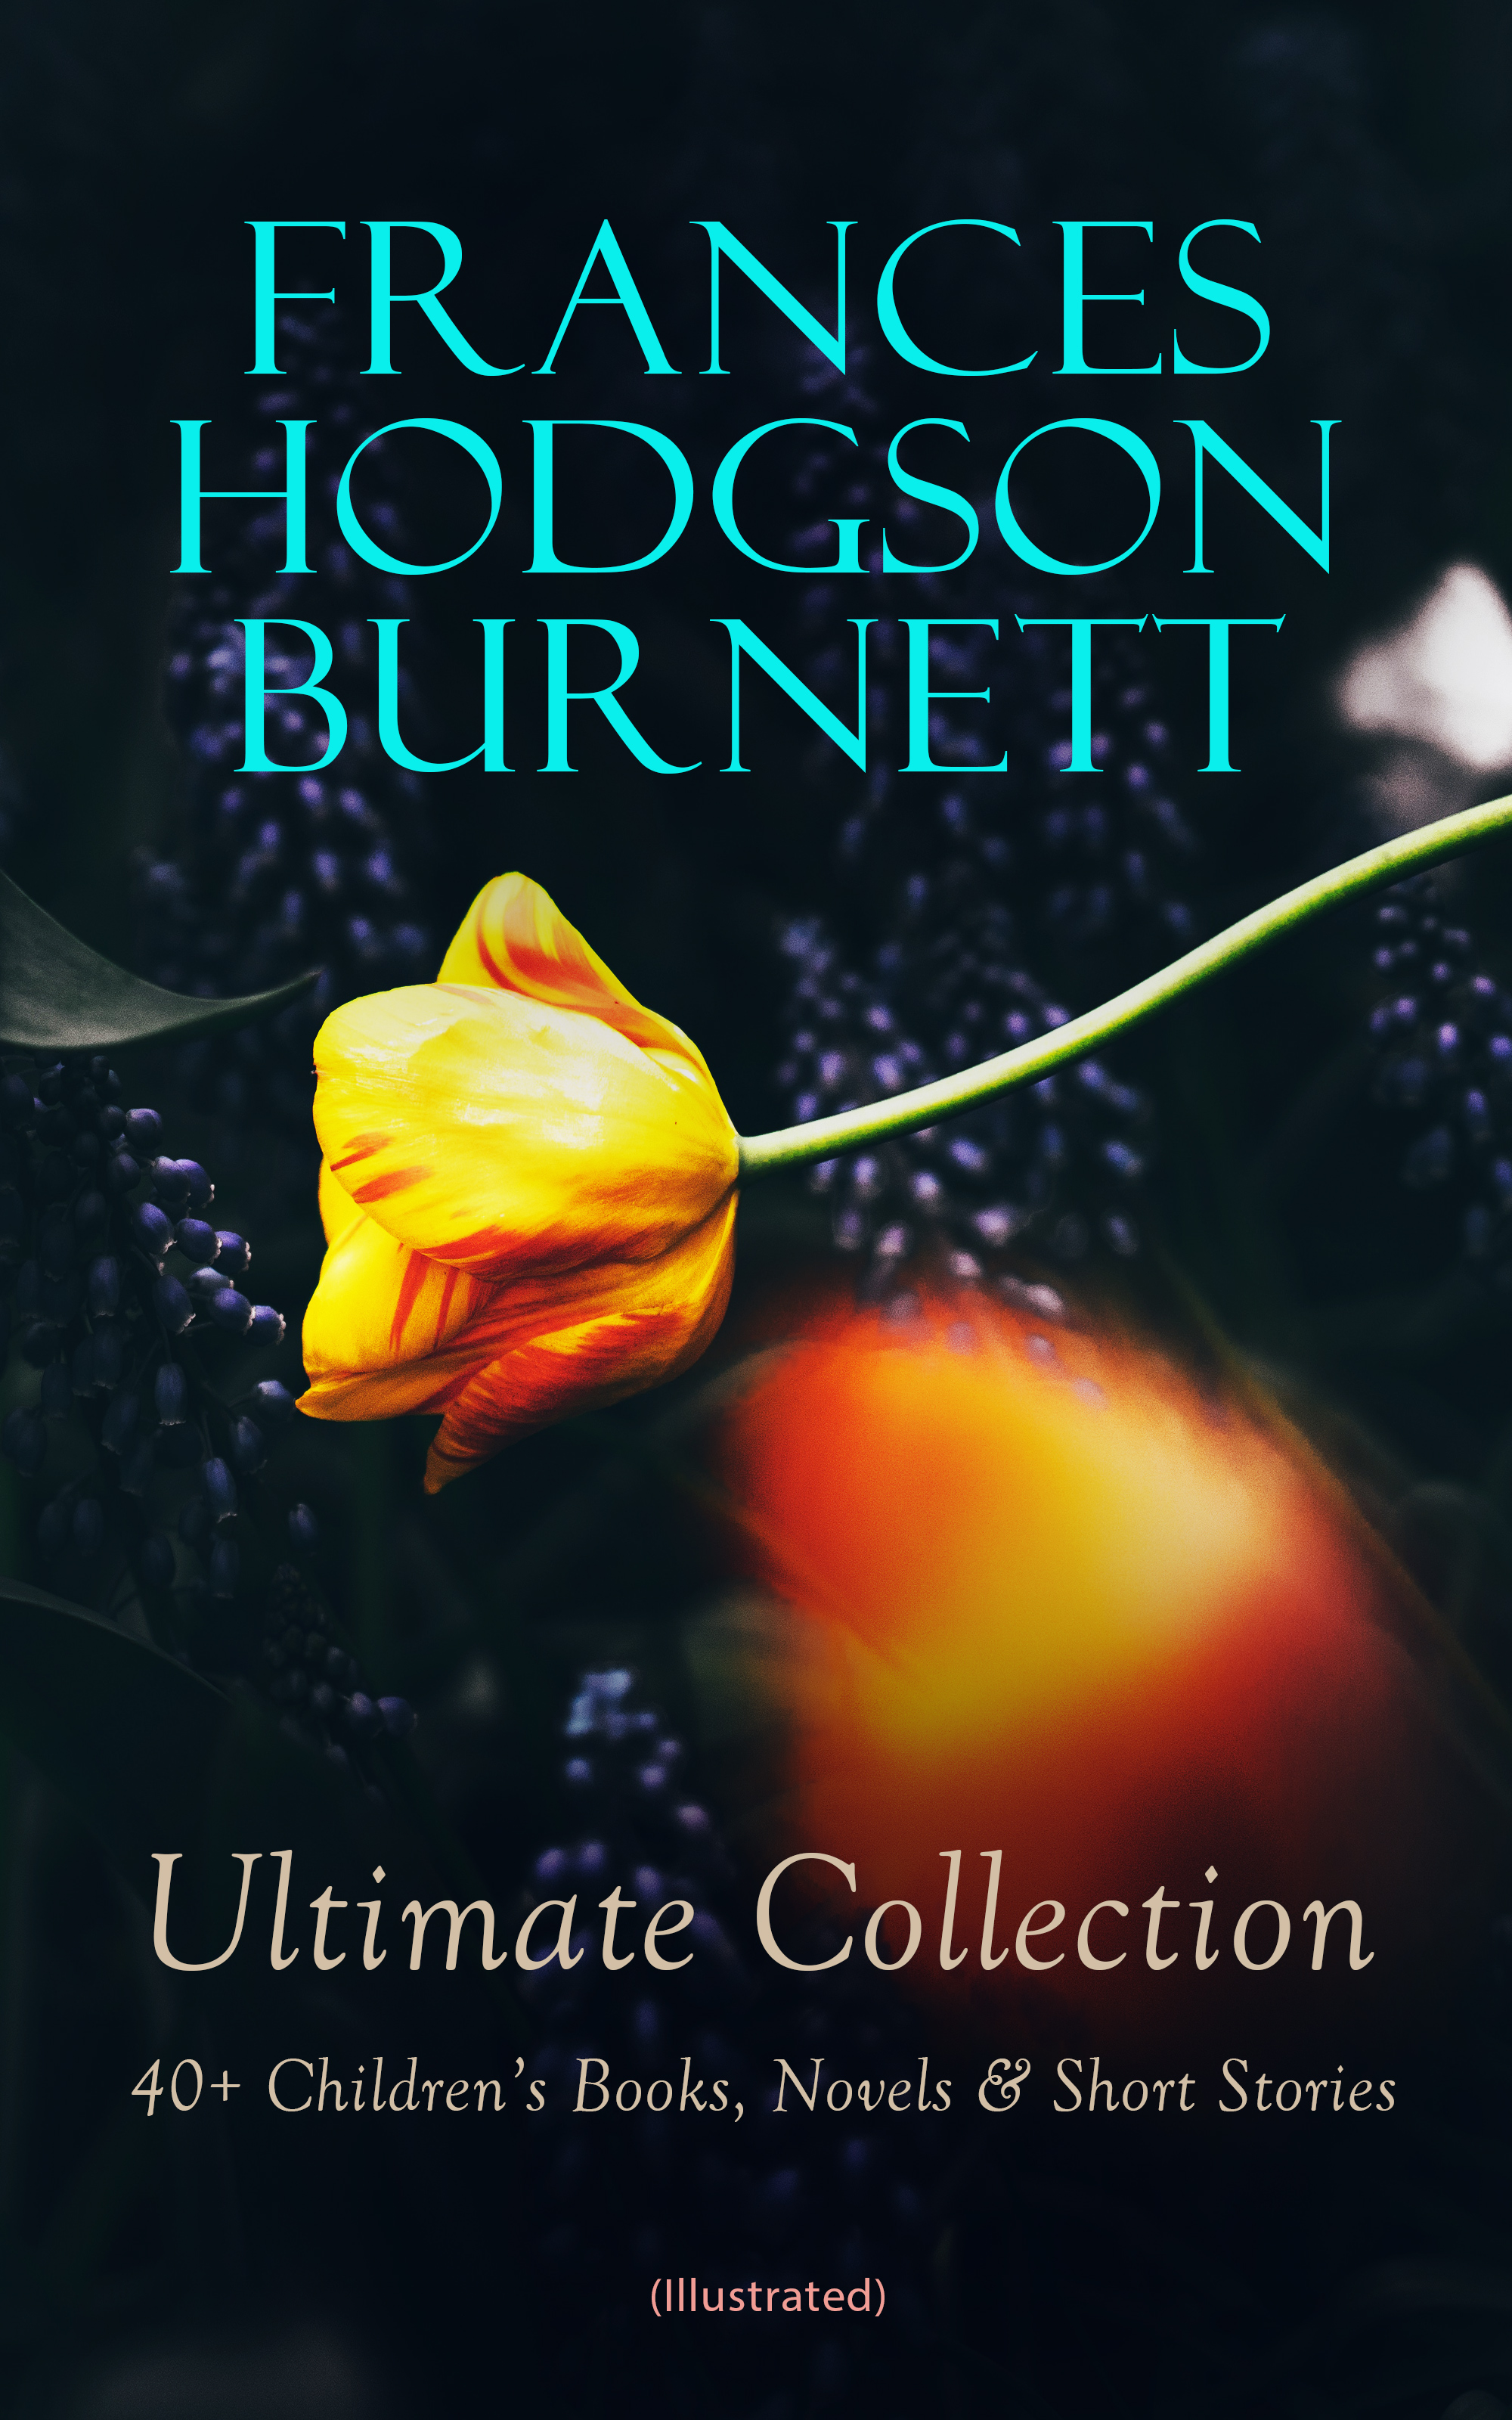 Frances Hodgson Burnett FRANCES HODGSON BURNETT Ultimate Collection: 40+ Children's Books, Novels & Short Stories (Illustrated) cornford annie watkins frances gateway b1 workbook